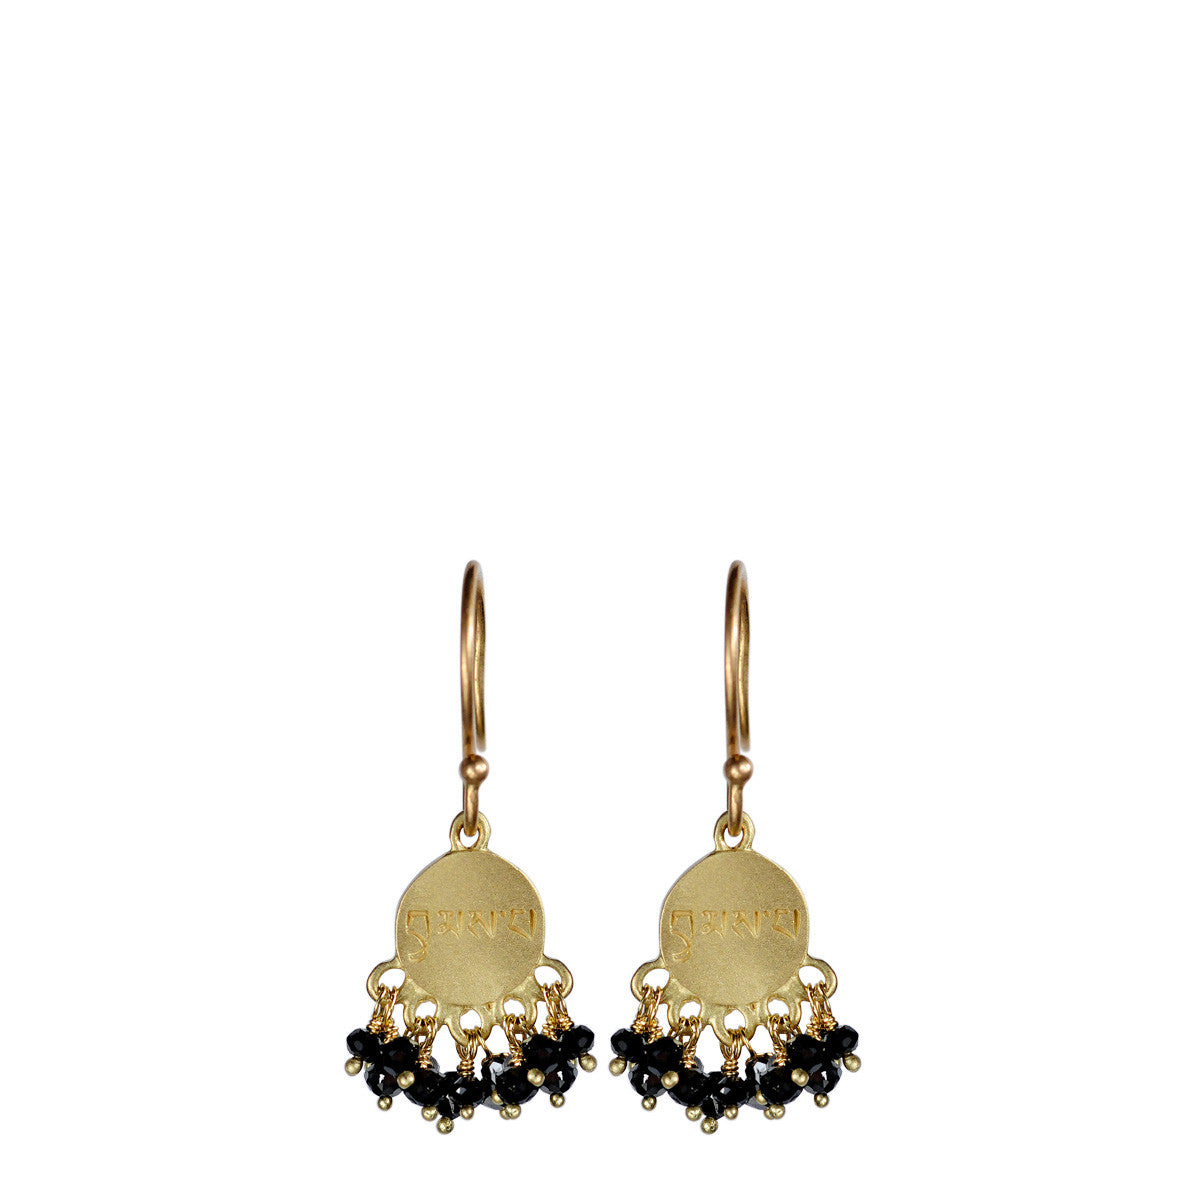 18K Gold Love Disc Earrings with Black Diamonds